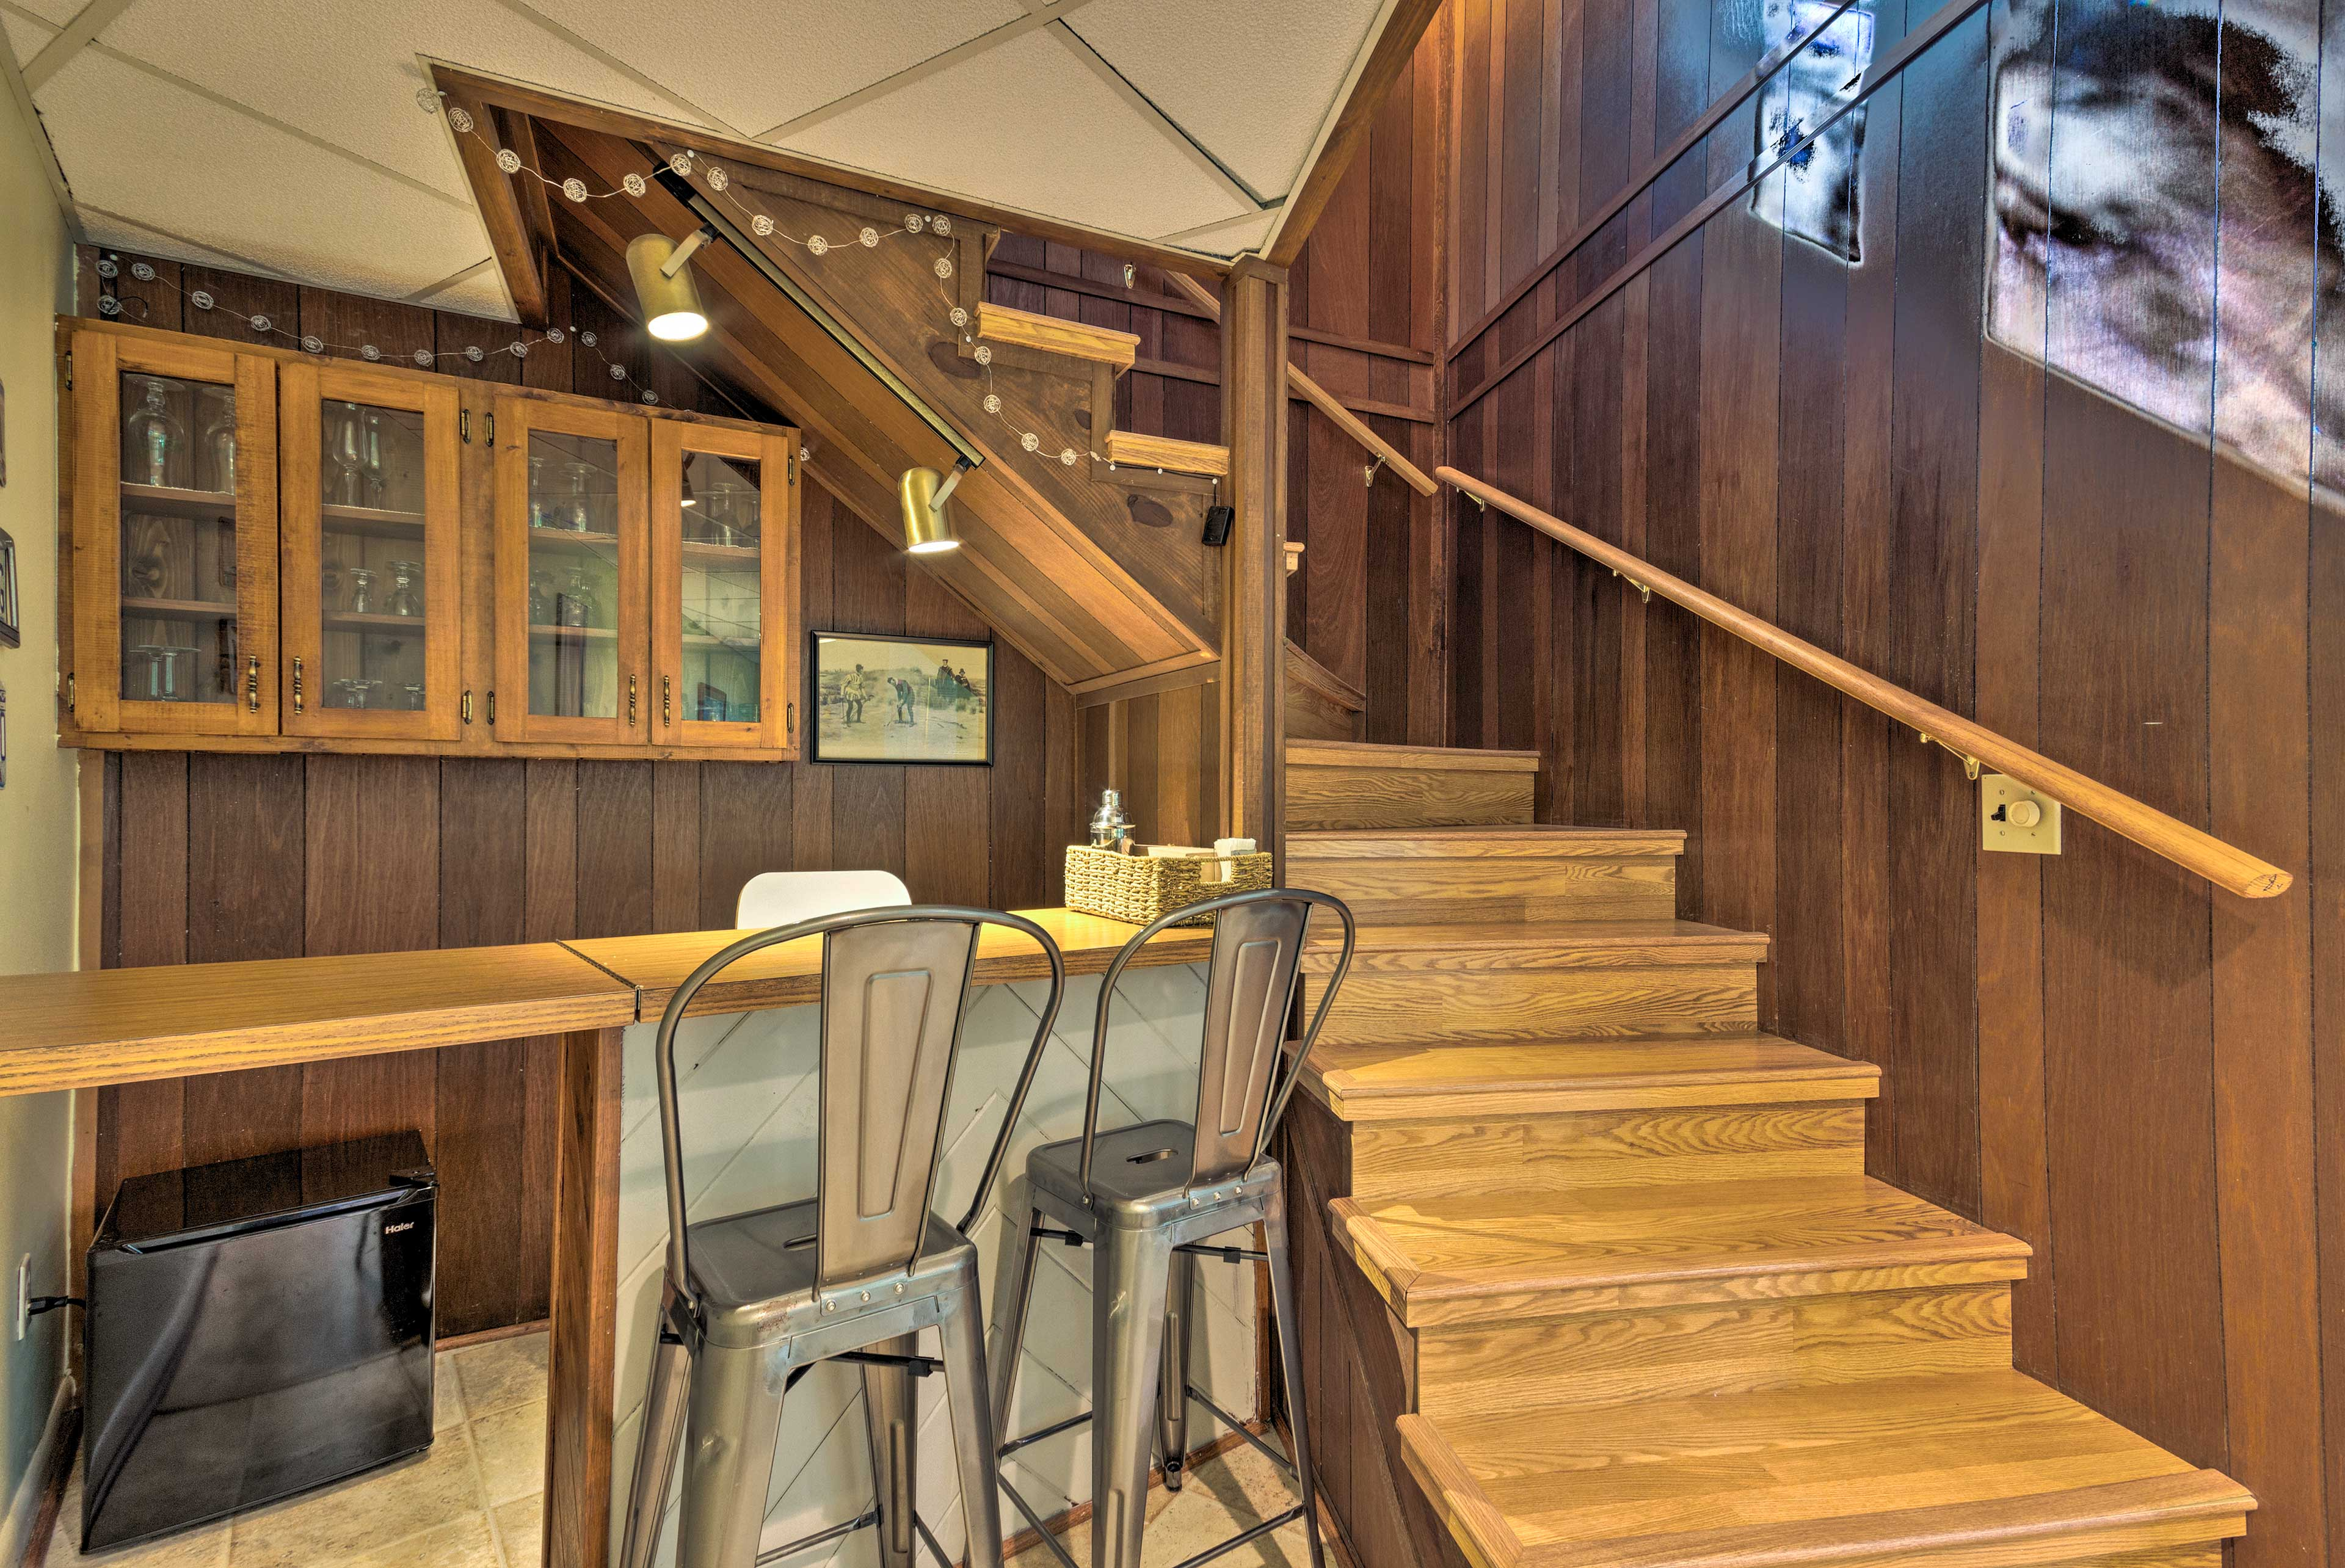 Pour the adult beverages from this bar underneath the staircase.